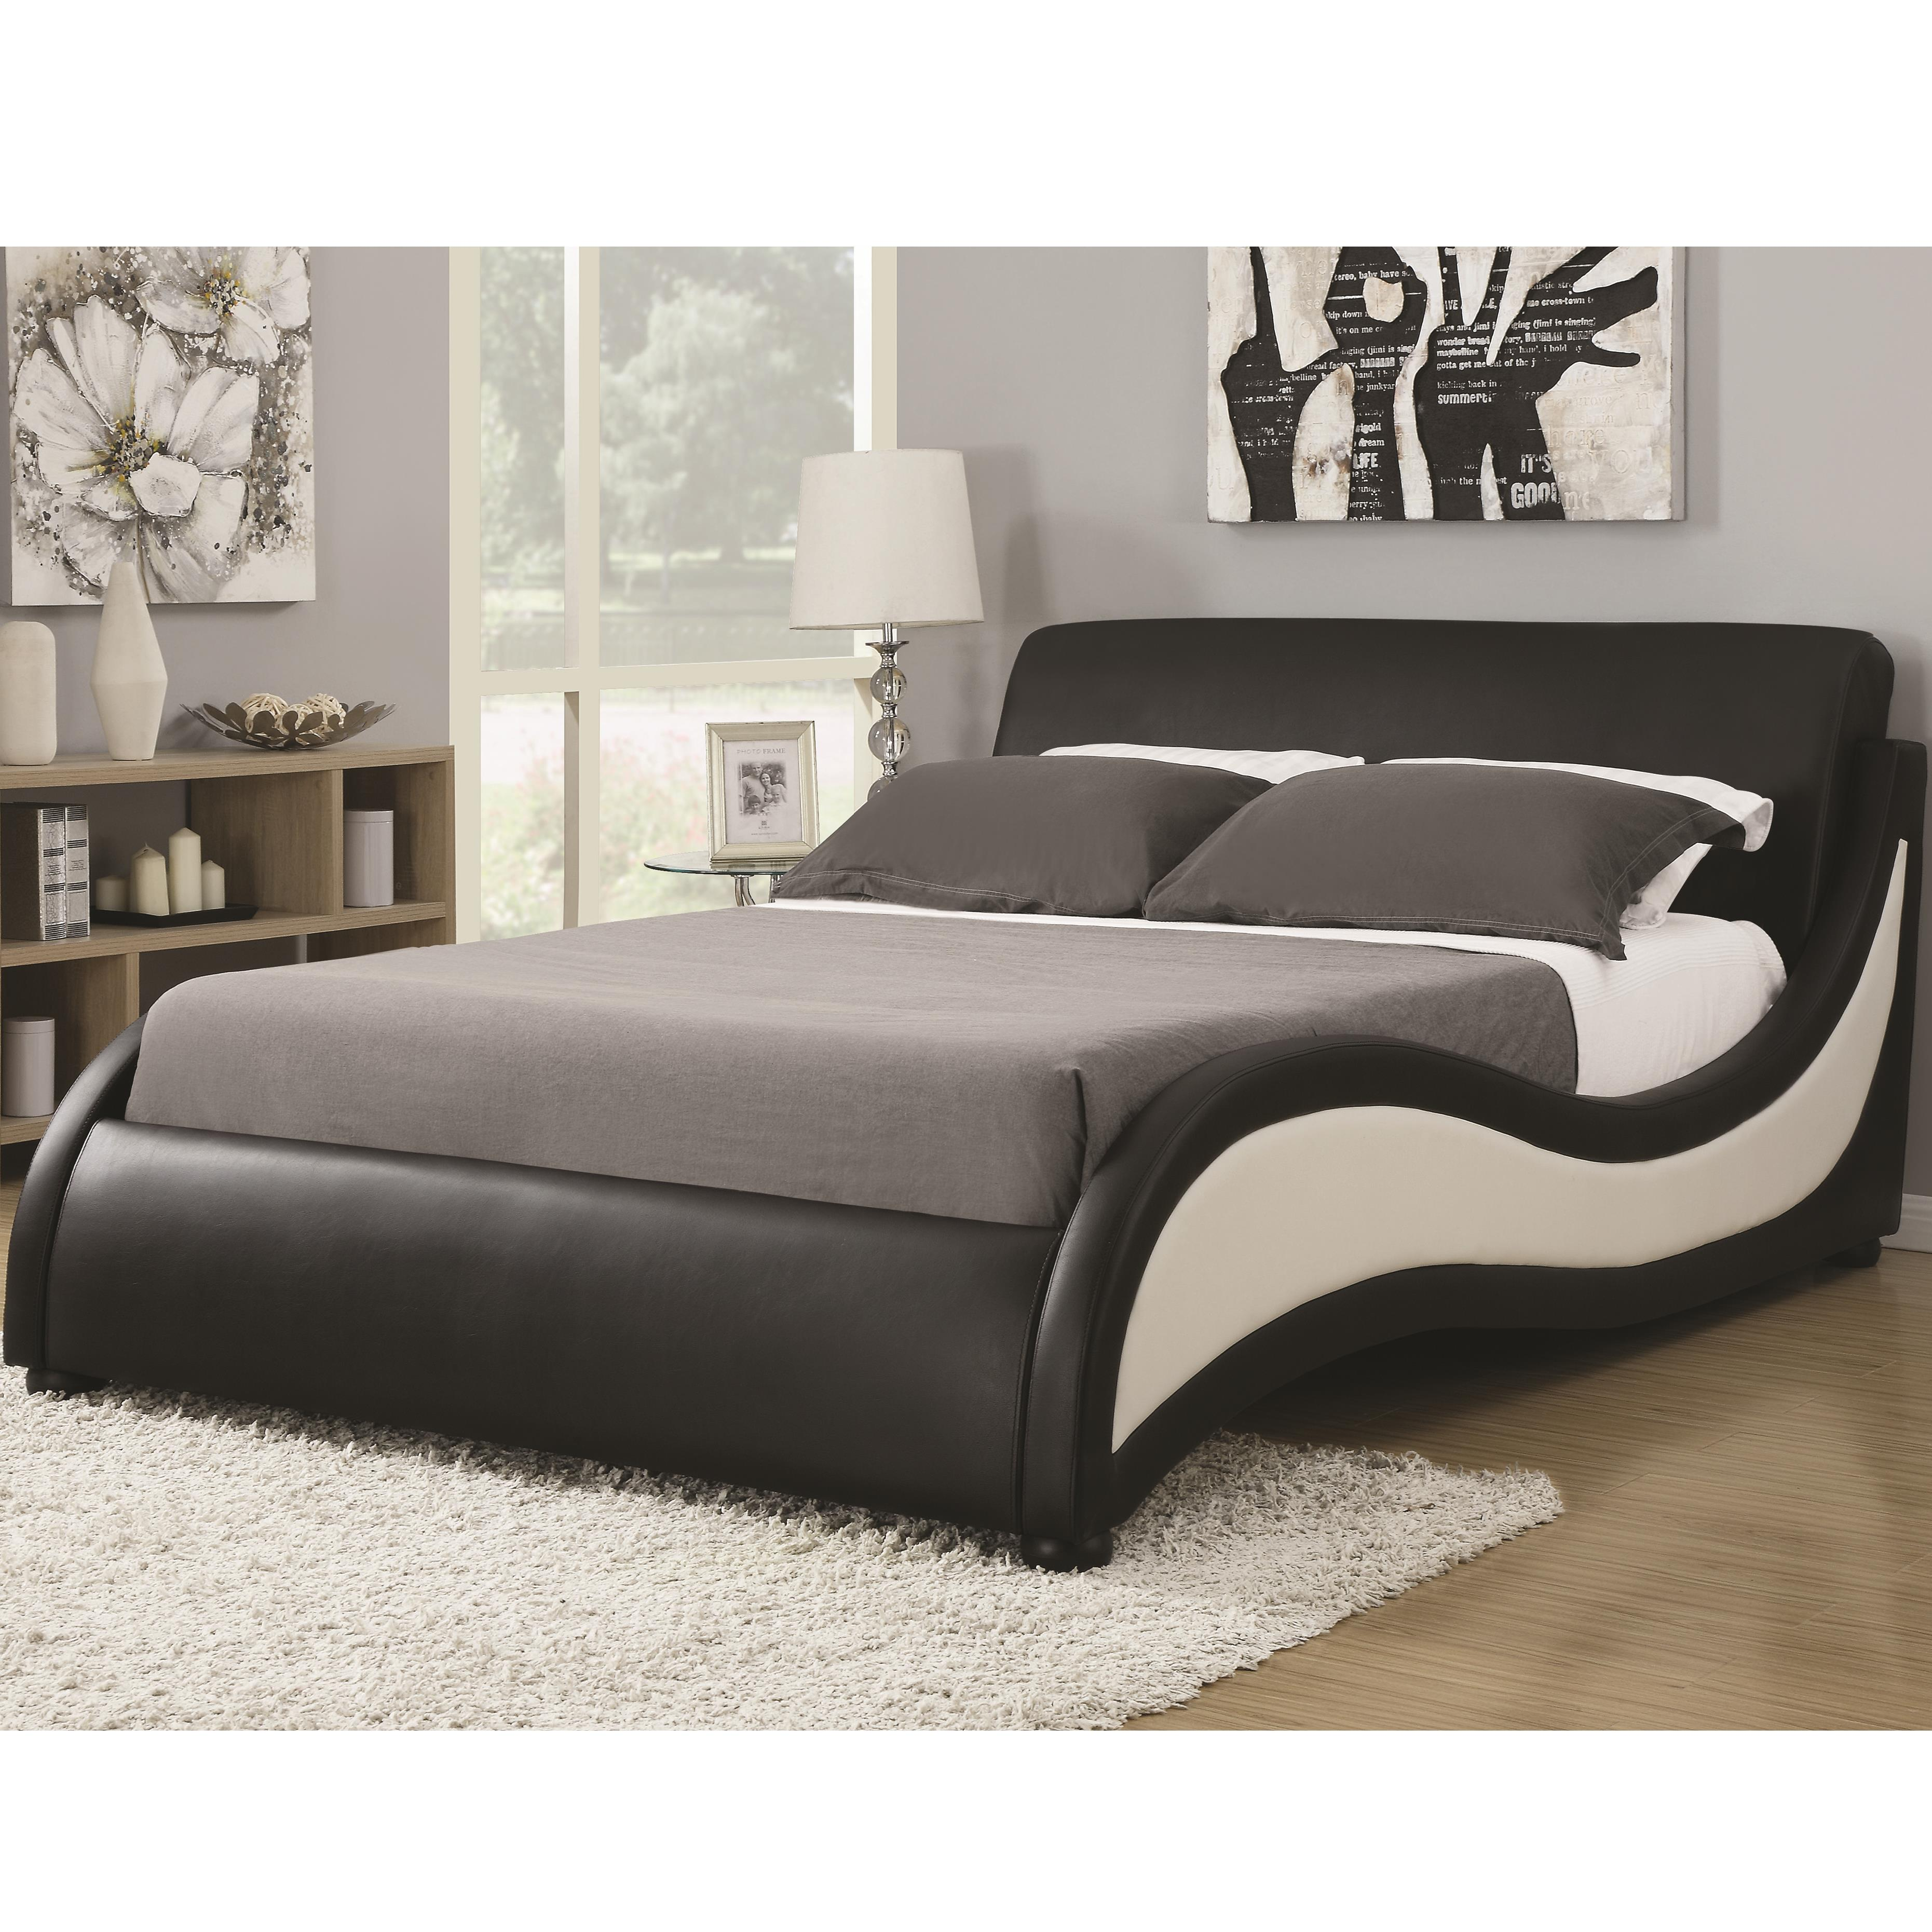 styles of living room chairs kitchen dining plans king niguel modern contemporary platform upholstered bed ...